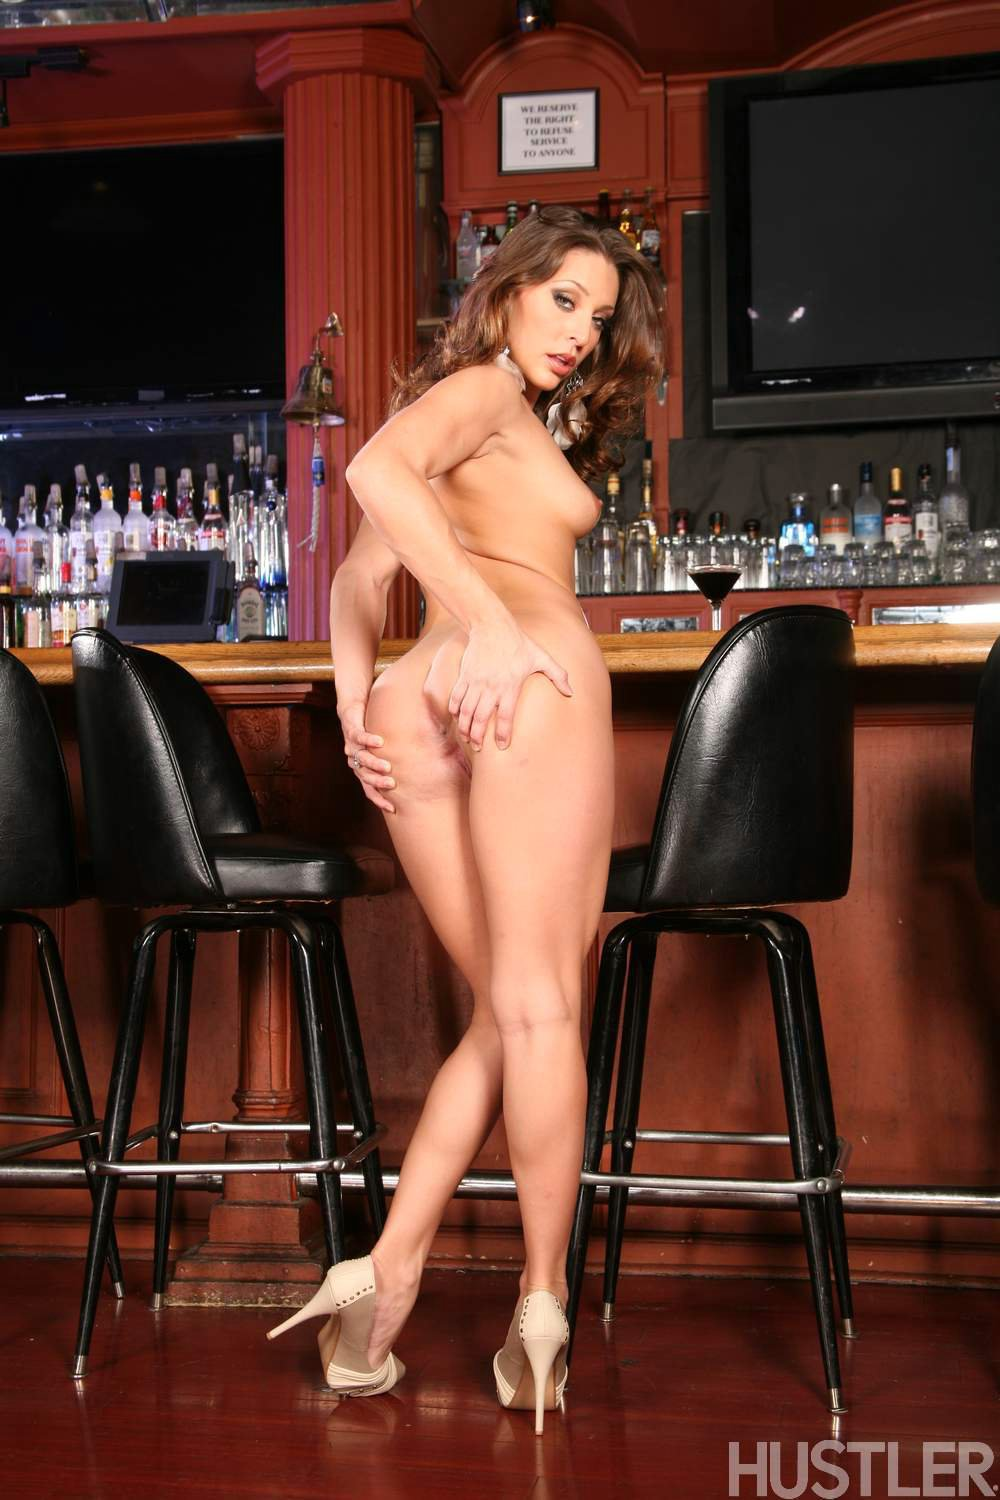 Gracie Glam in high heels posing at the bar  My Pornstar Book